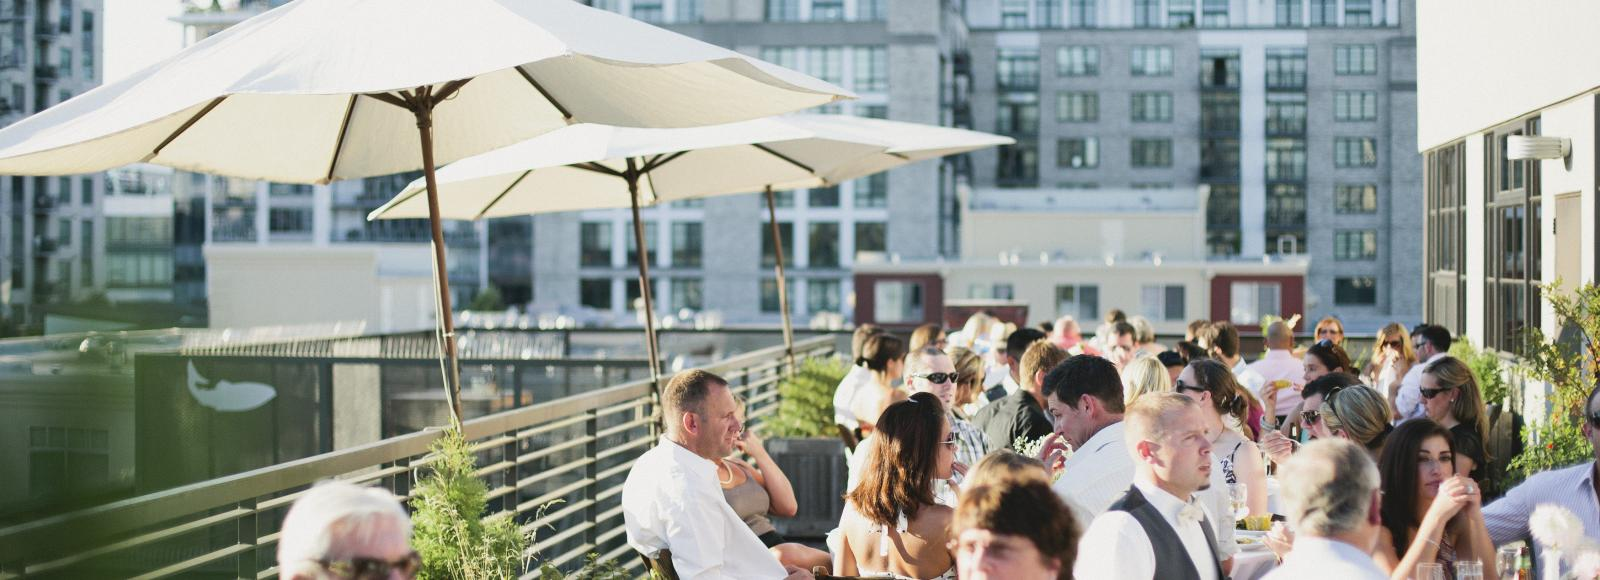 Wedding guests recline at dinner tables on the Ecotrust rooftop terrace. The sun is shining and umbrellas are erected for shade.